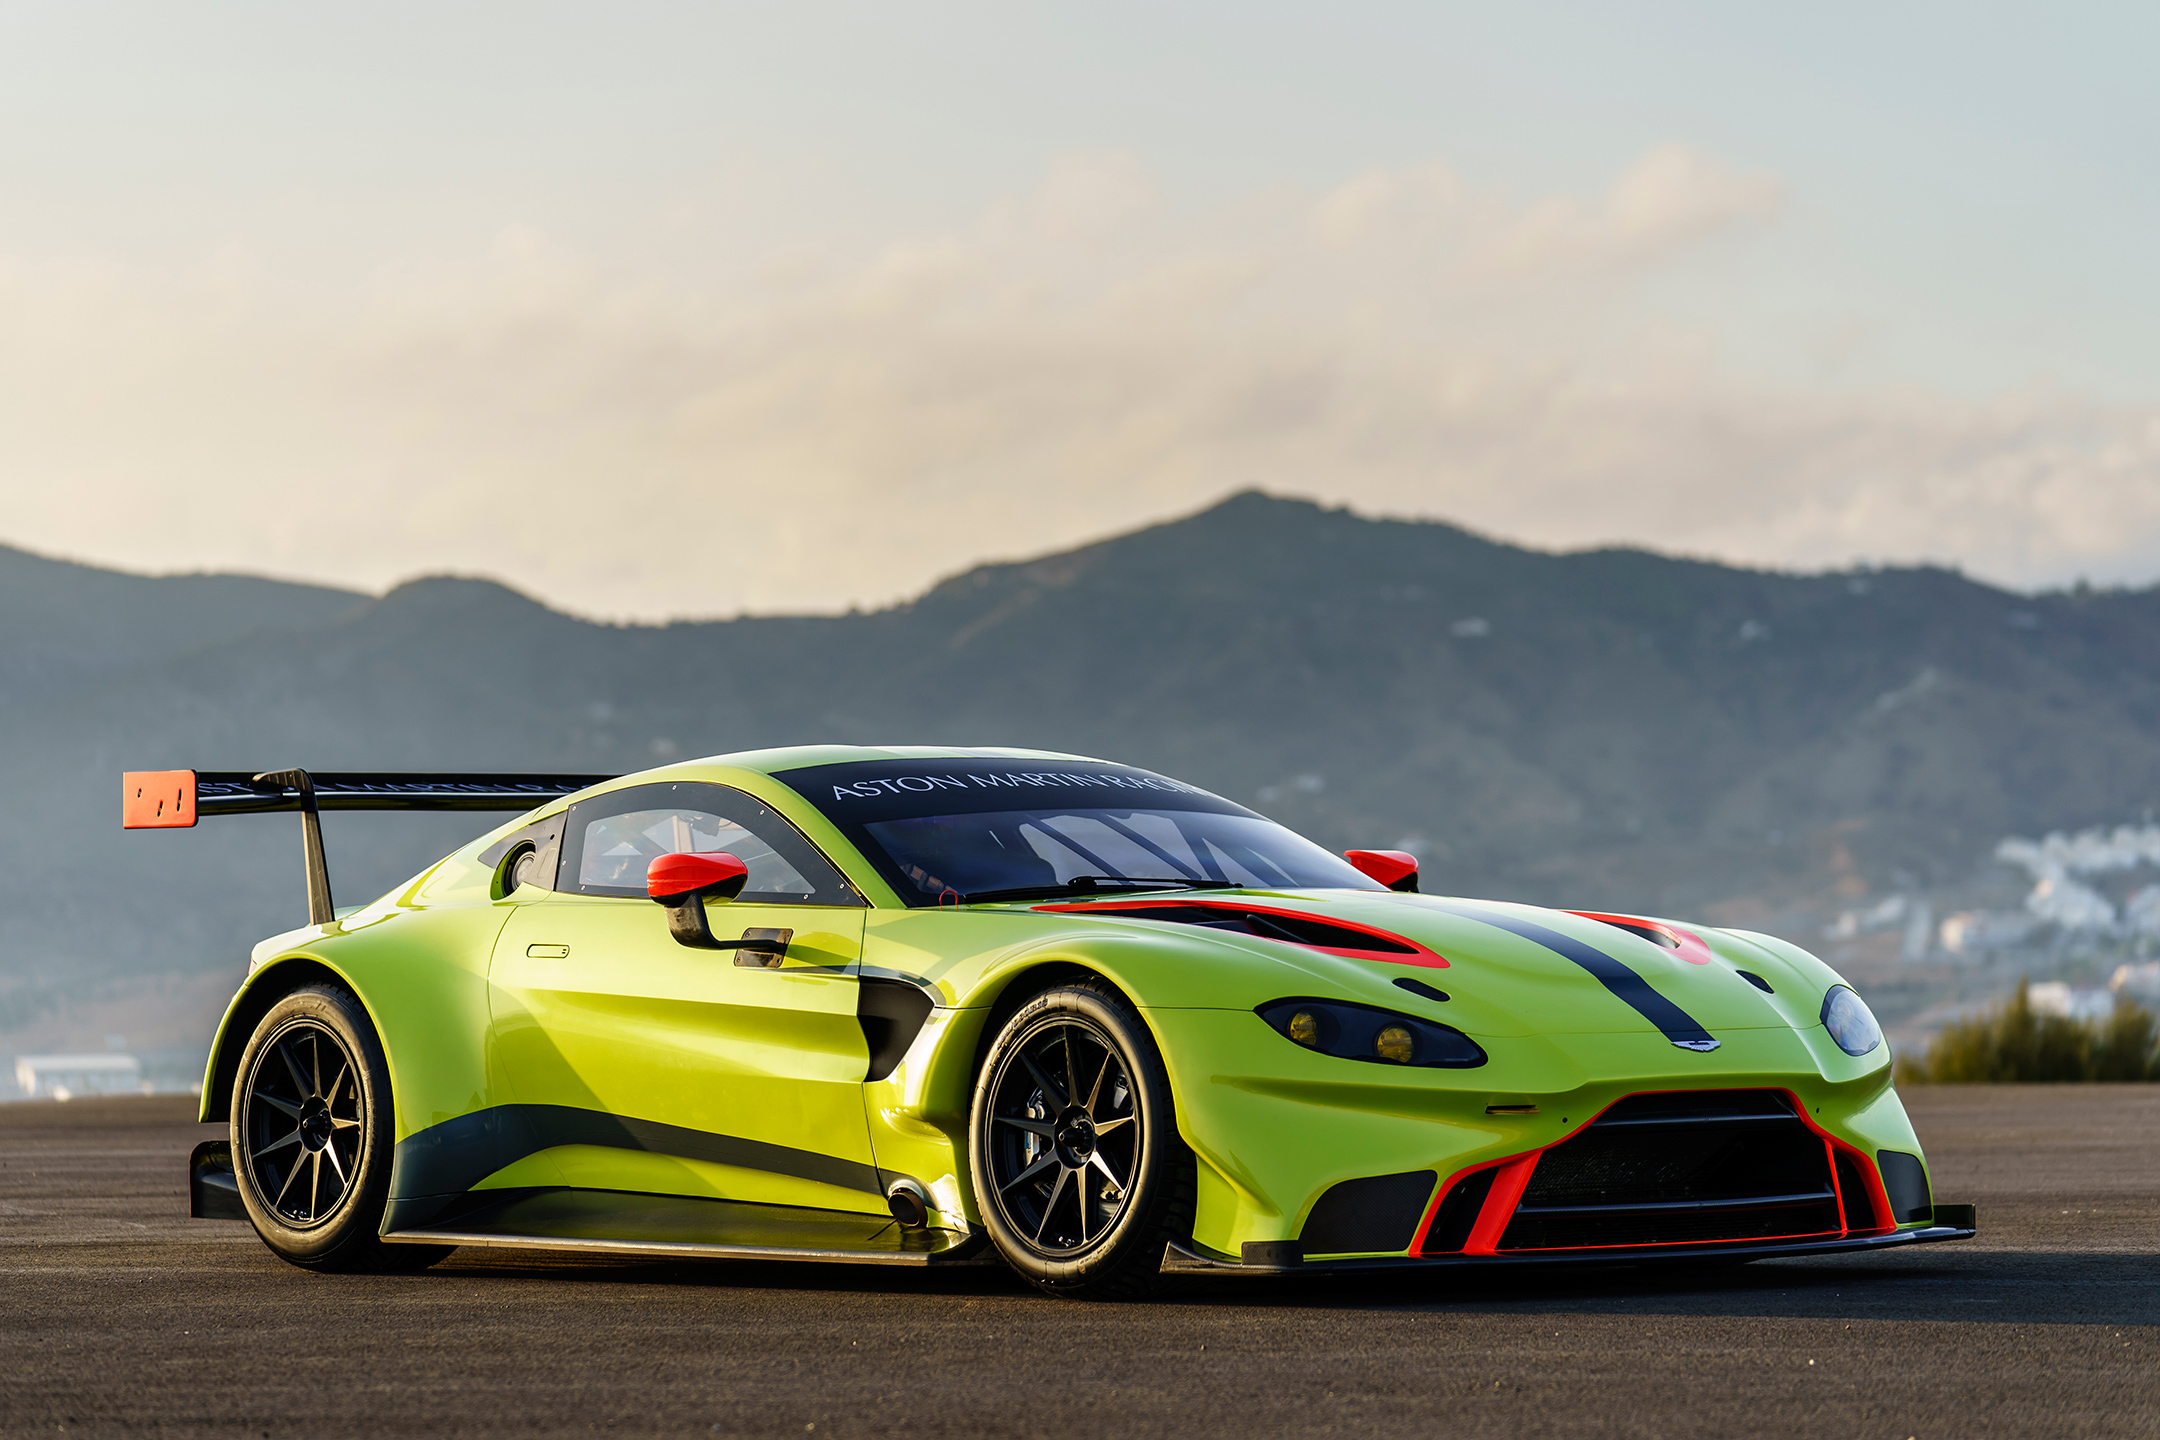 Aston Martin Racing Vantage GTE - 2018 - front side-face / profil